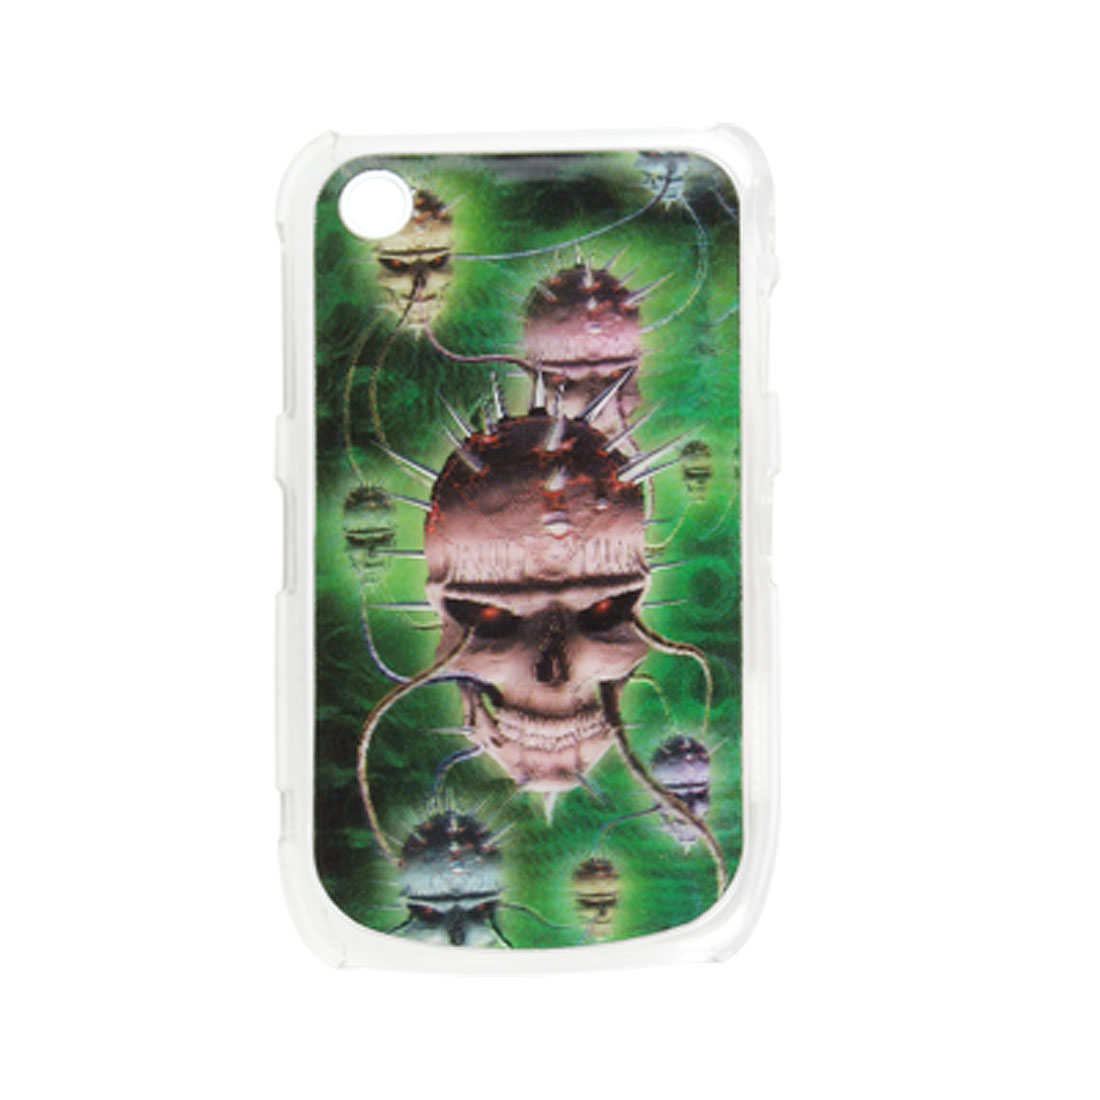 Green 3D Skull Plastic Case Cover for BlackBerry 8520